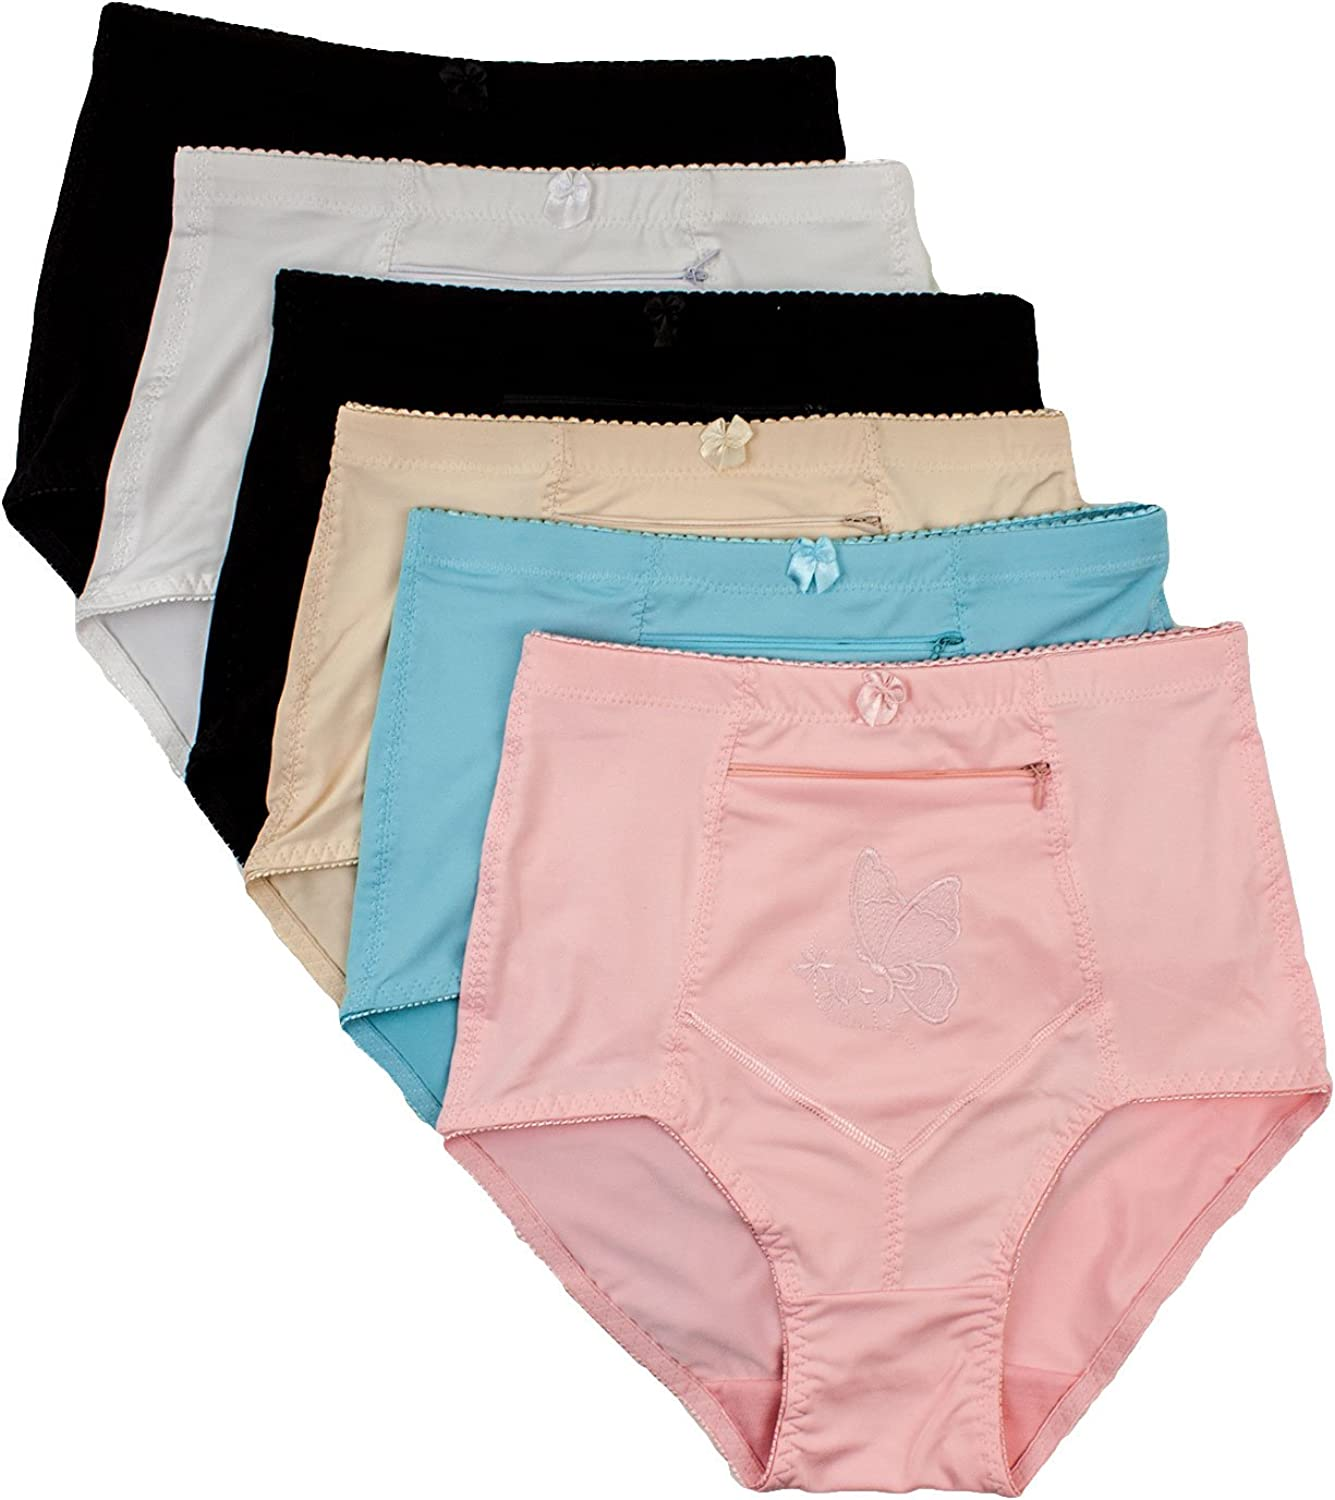 Yours Clothing Women/'s Plus Size 5 Pack Pink Butterfly Full Briefs